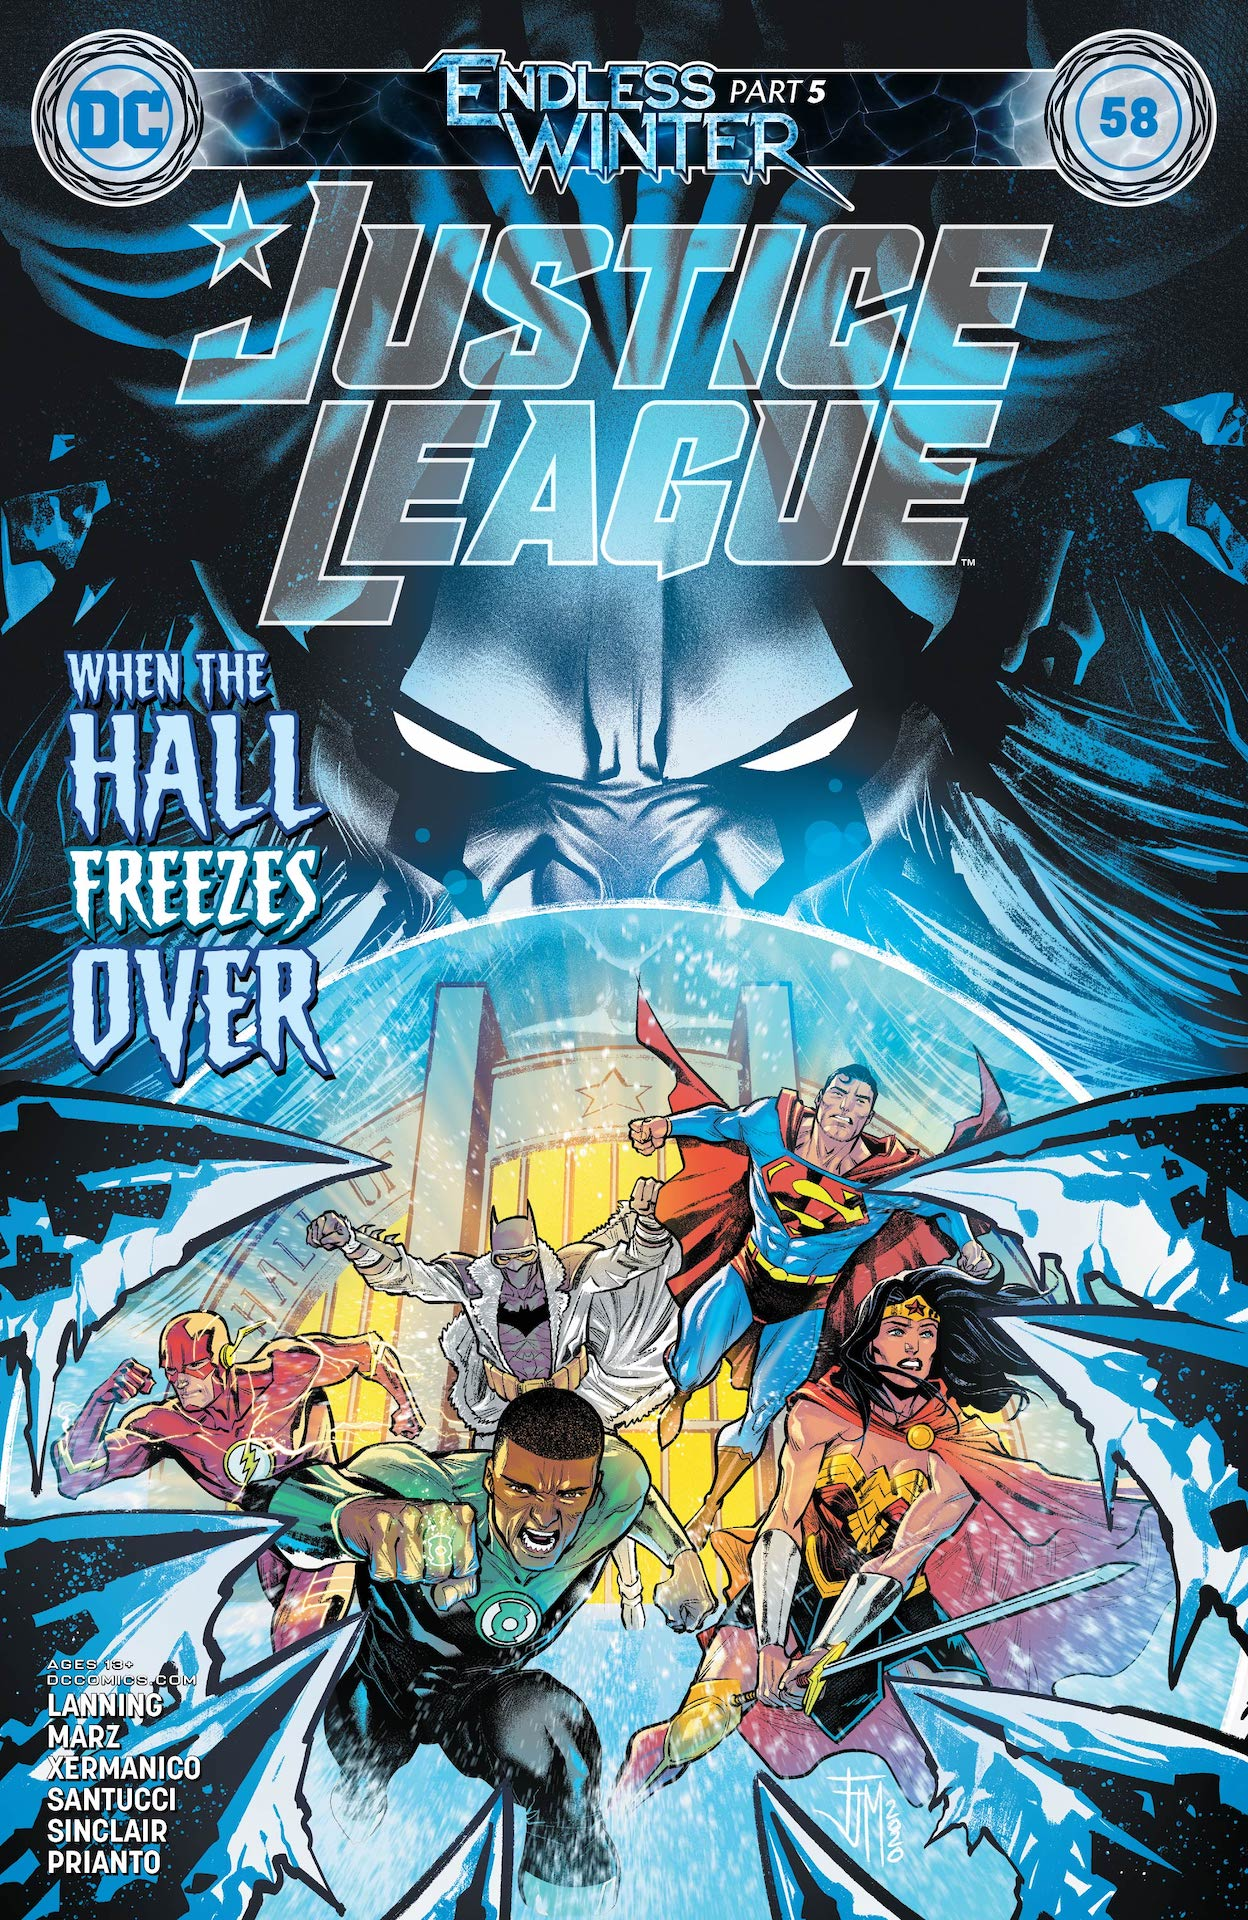 Justice League #58 preview